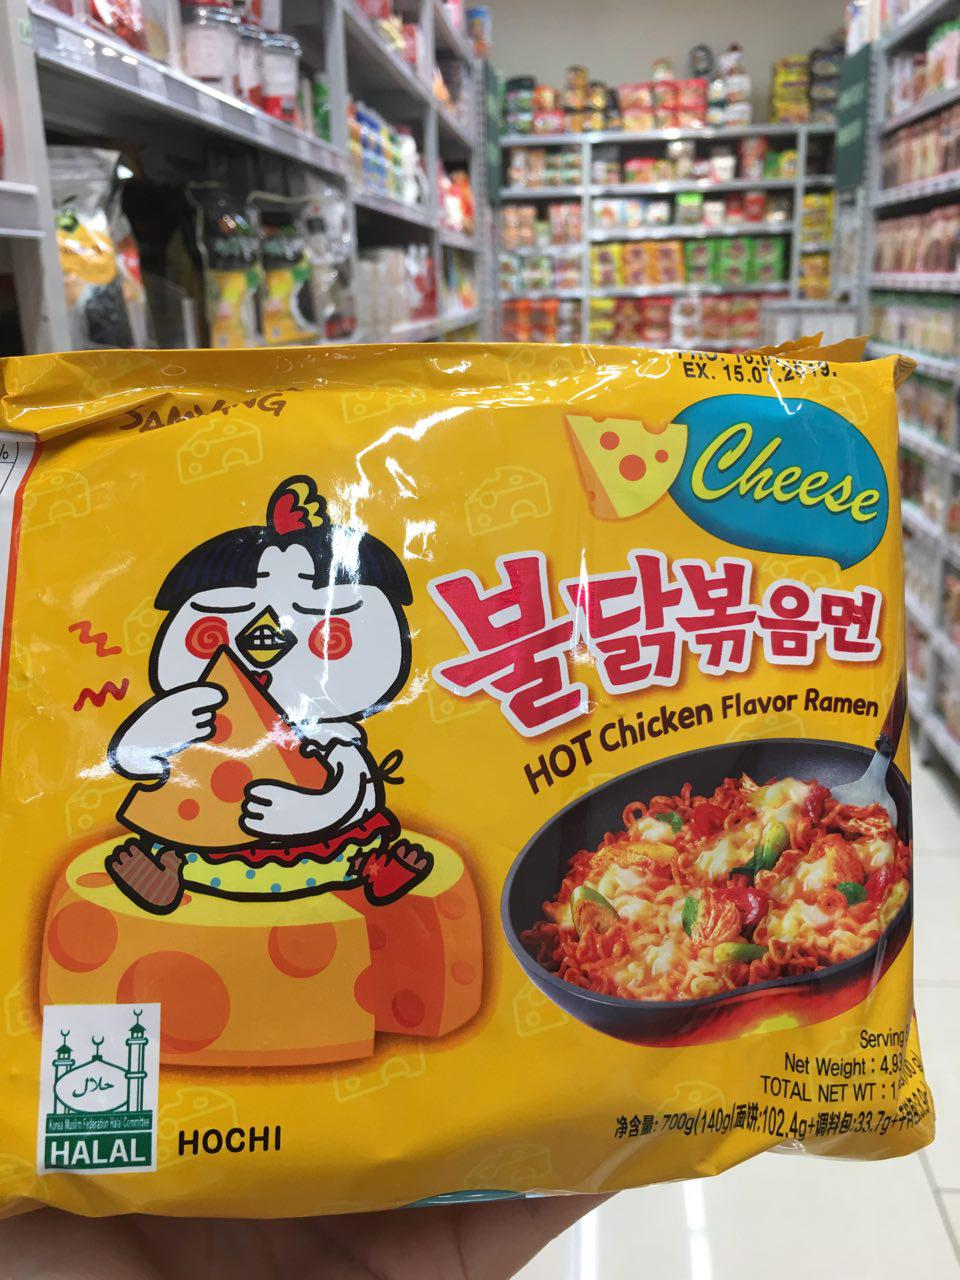 Halal Chicken Cheese Flavoured Samyang Noodles